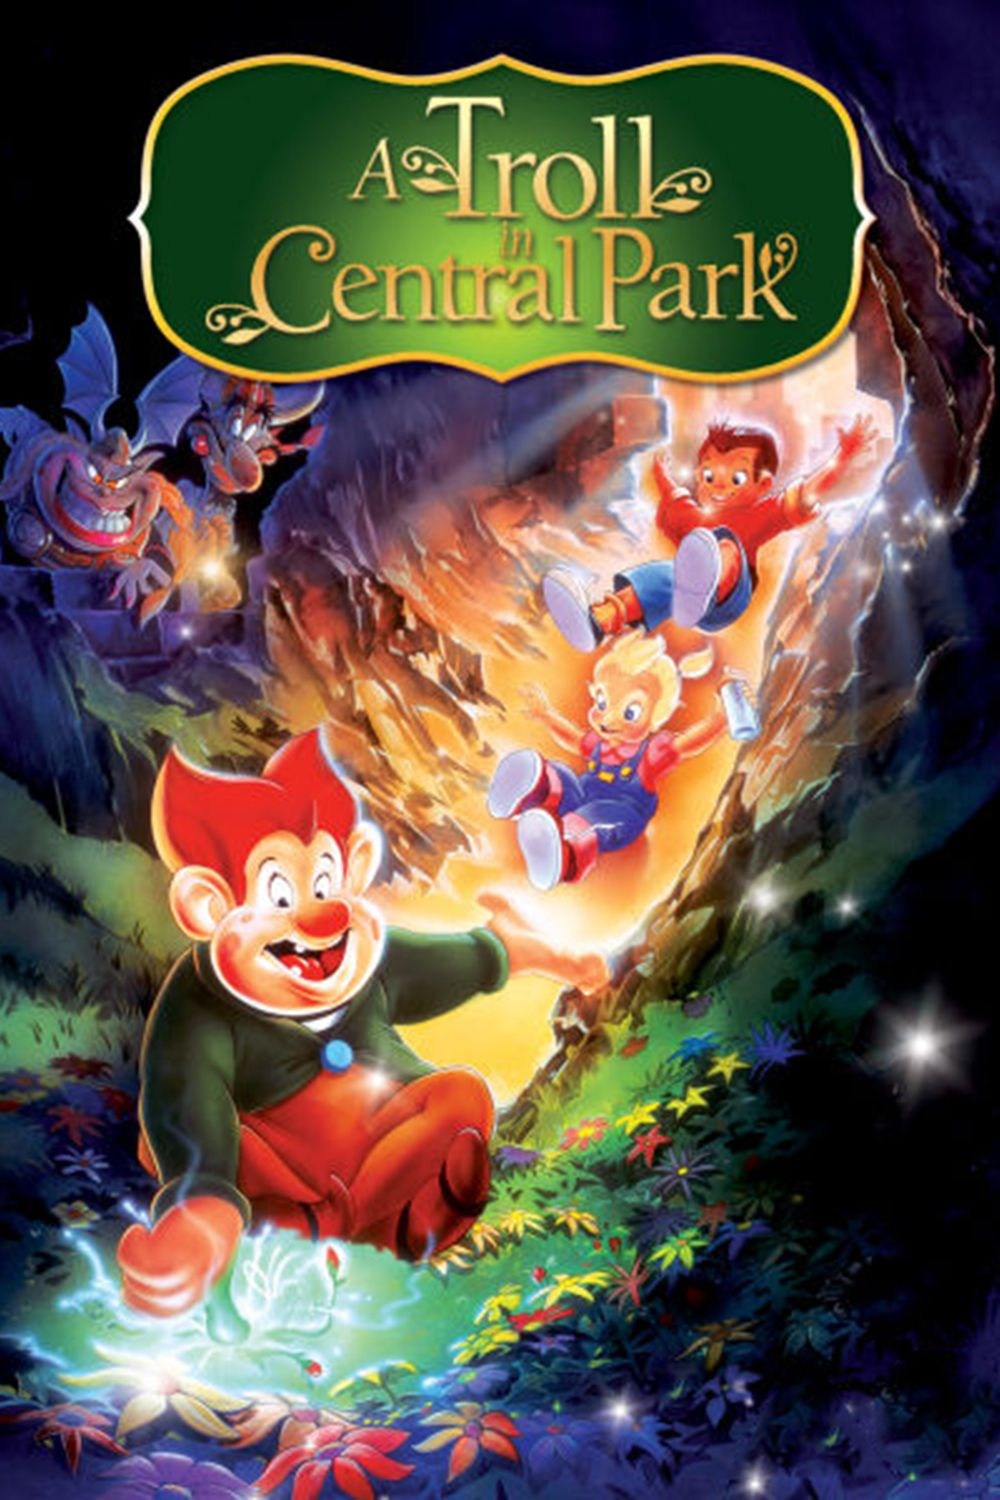 click image to watch a troll in central park 1994 wow